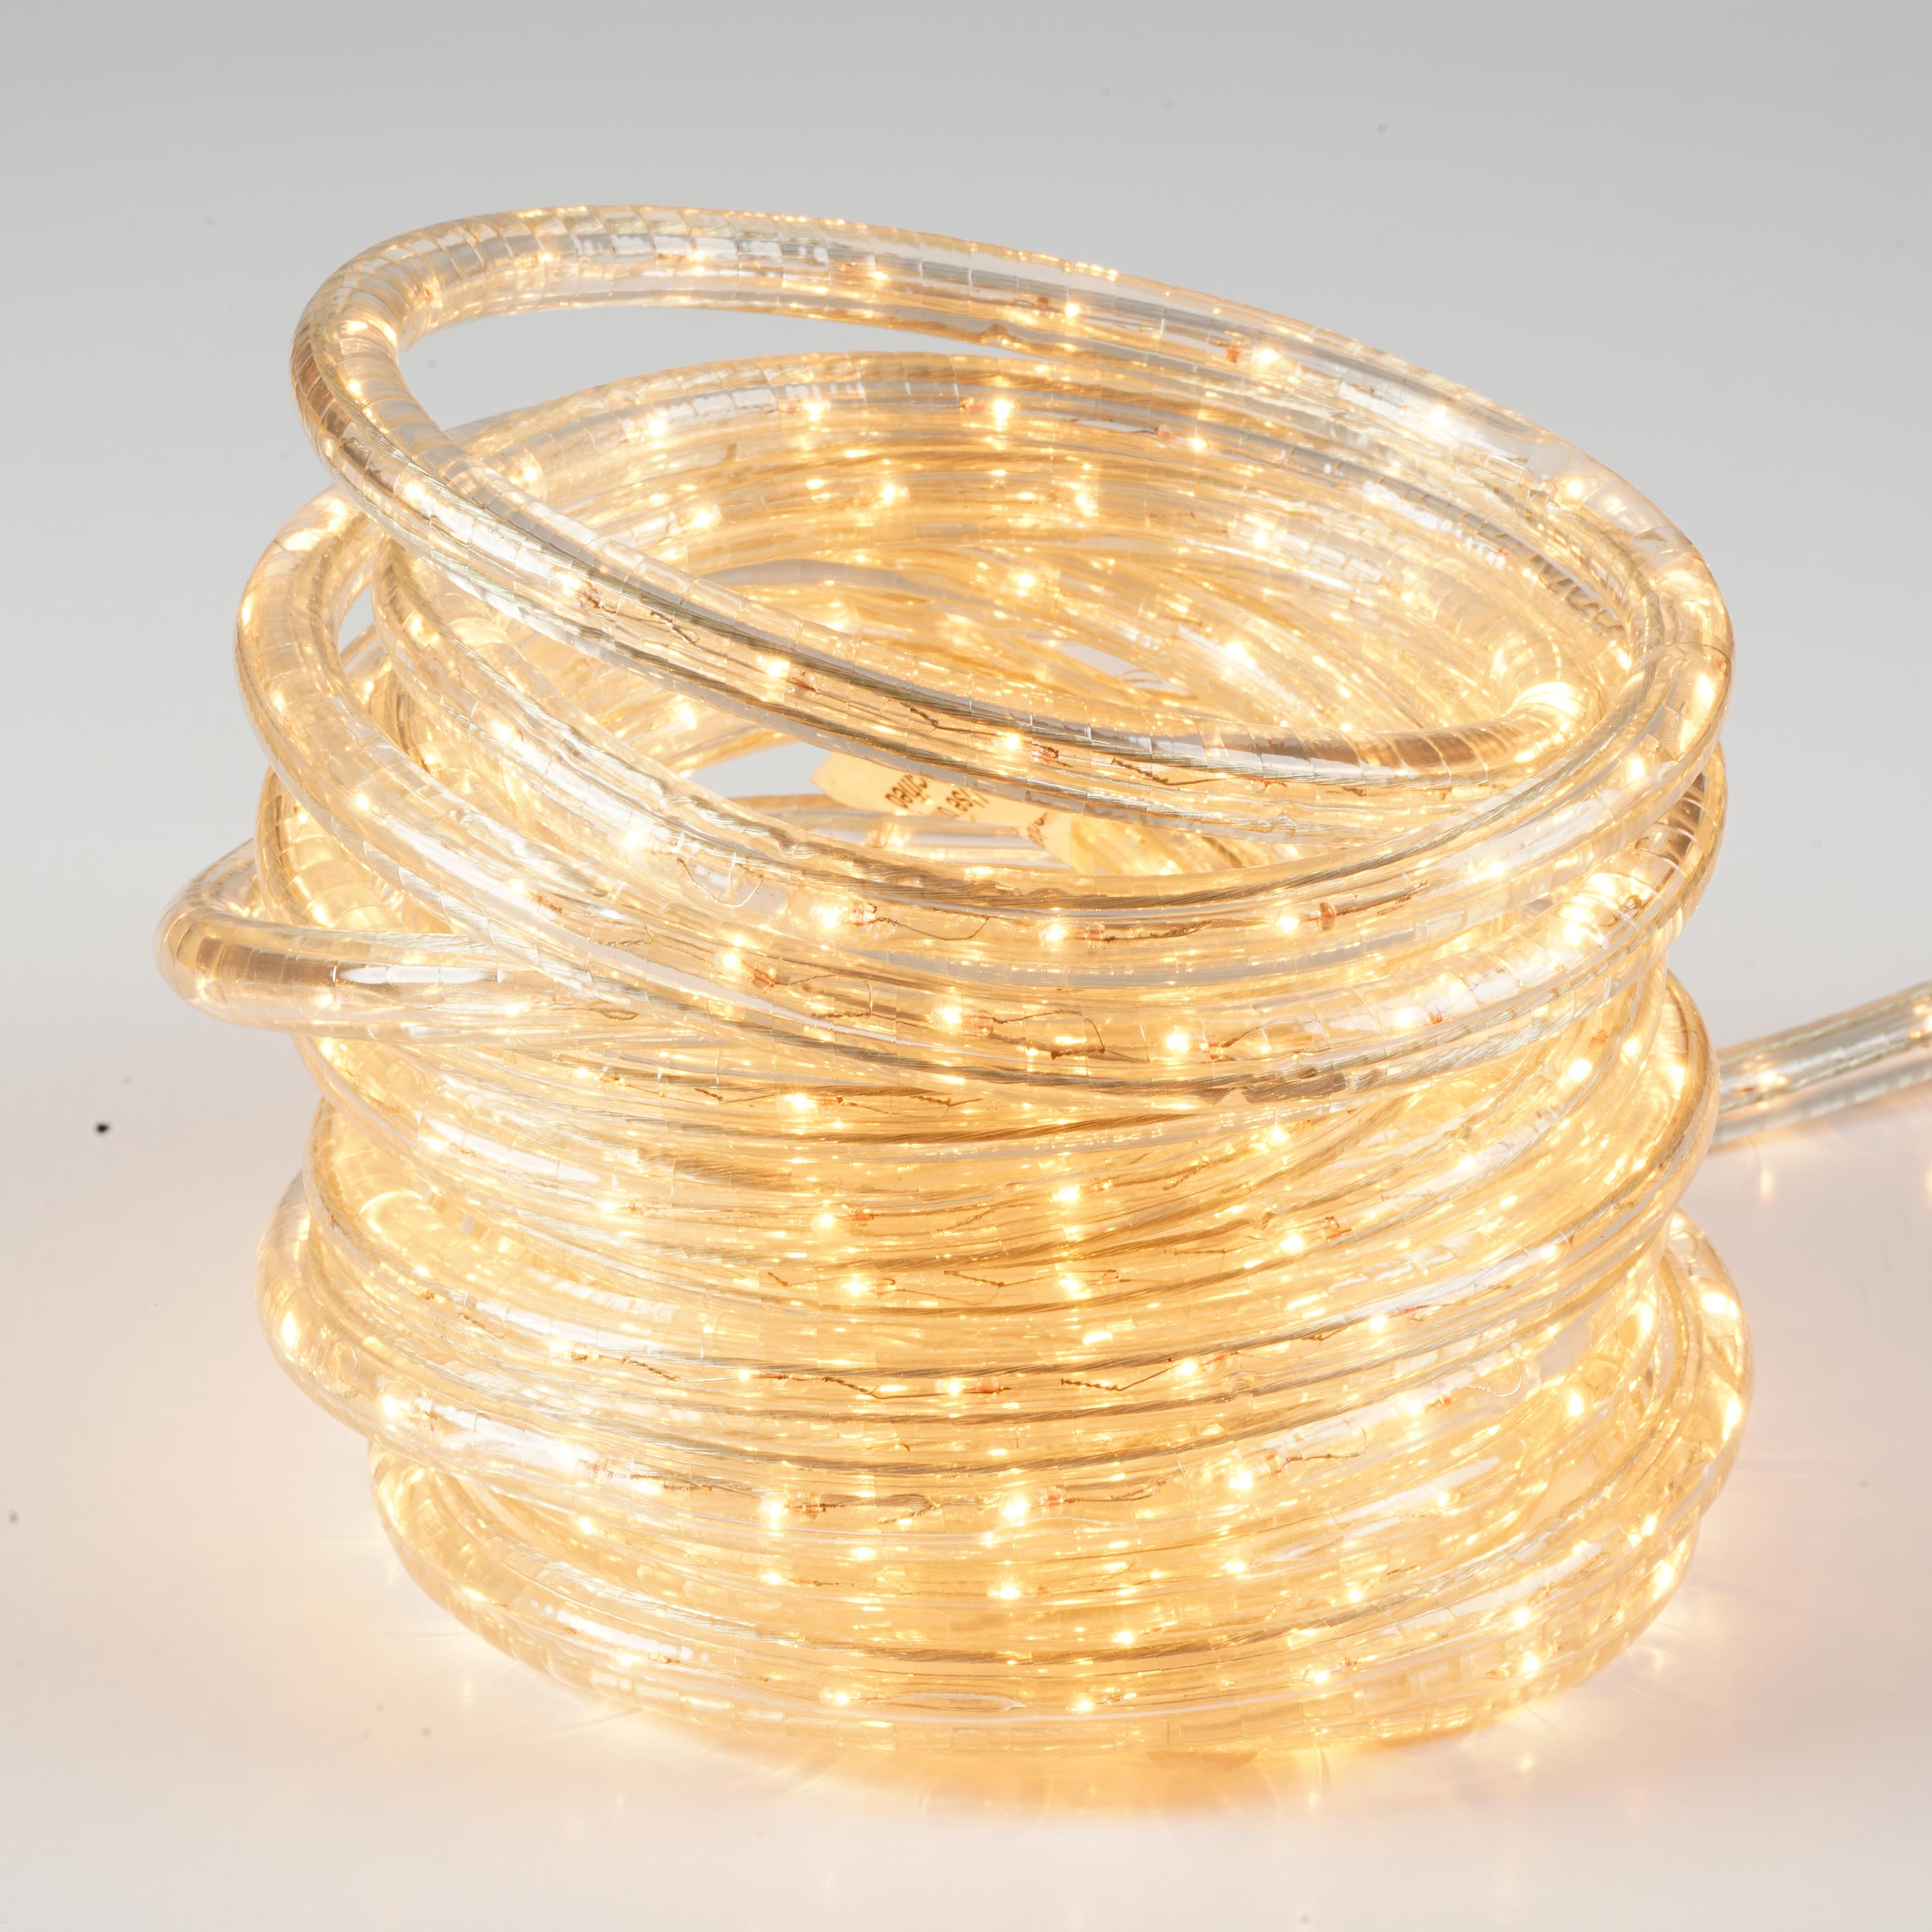 Mainstays 30-foot UL Indoor Outdoor Rope Light Set by EVERSTAR MERCHANDISE CO LIMITED